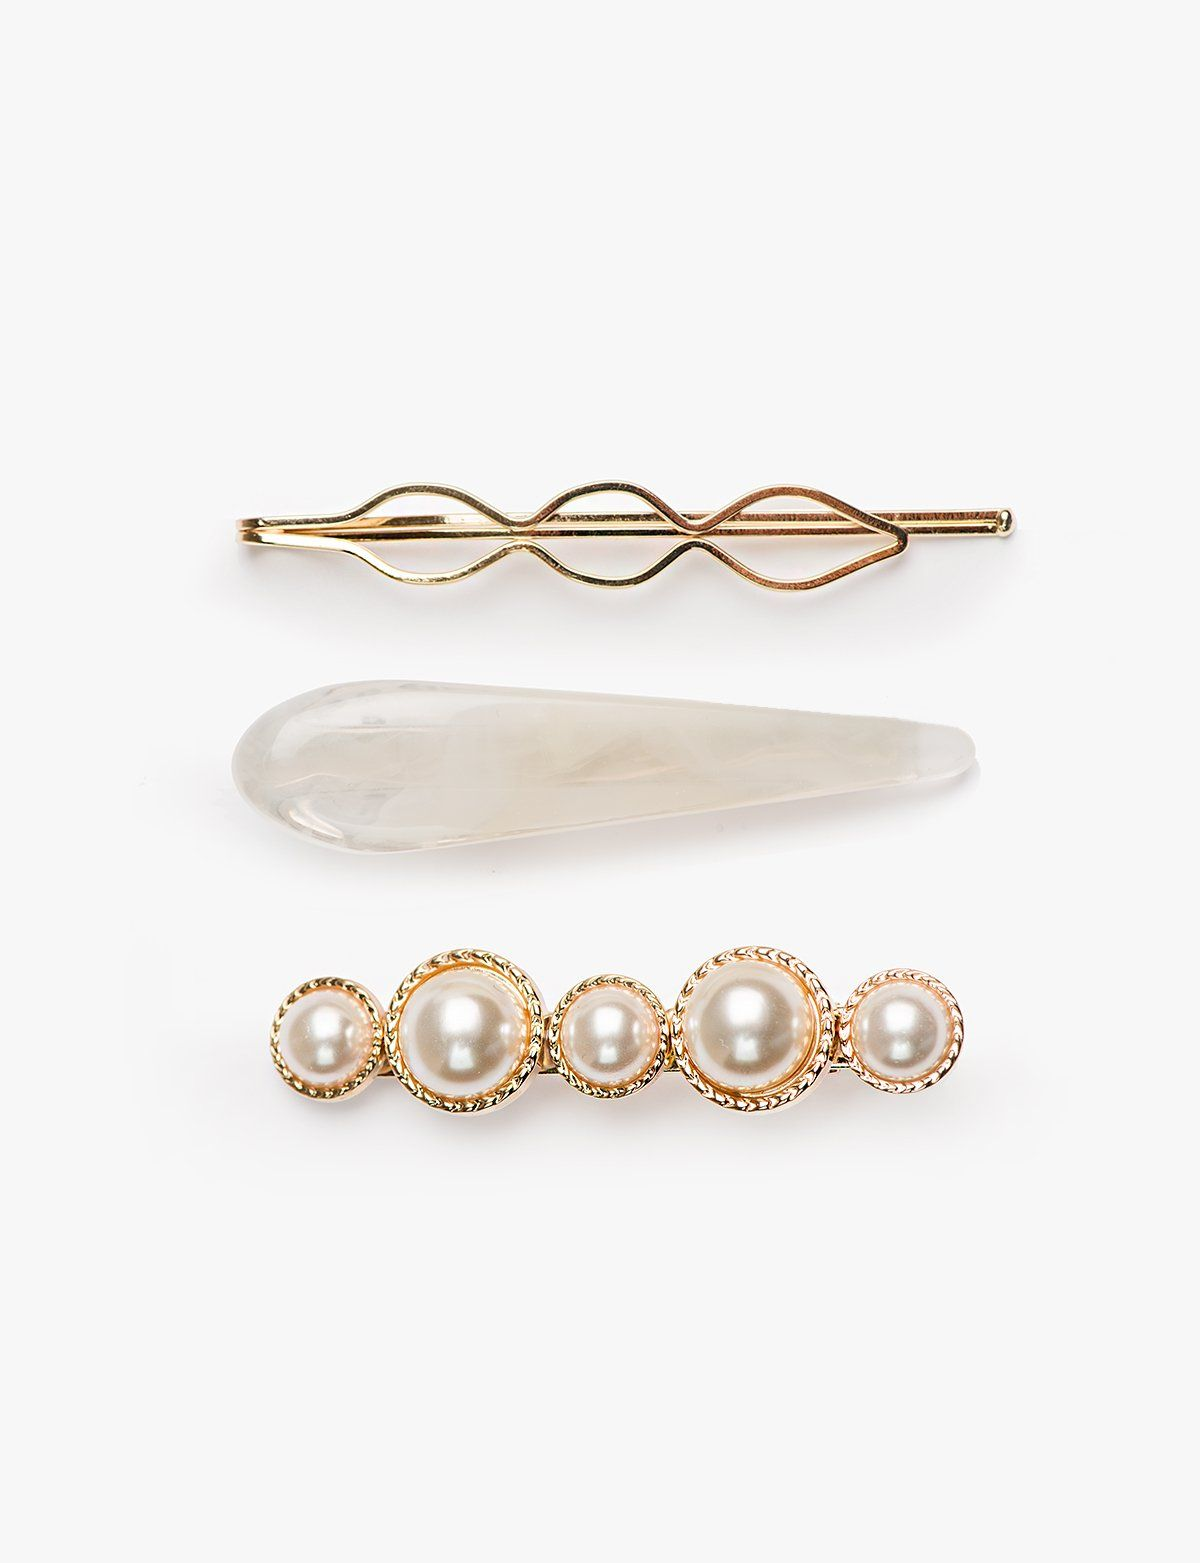 7f99a11f655260 Pearl Gold and Enamel Clip Set   Wish List in 2019   Jewelry, Gold ...